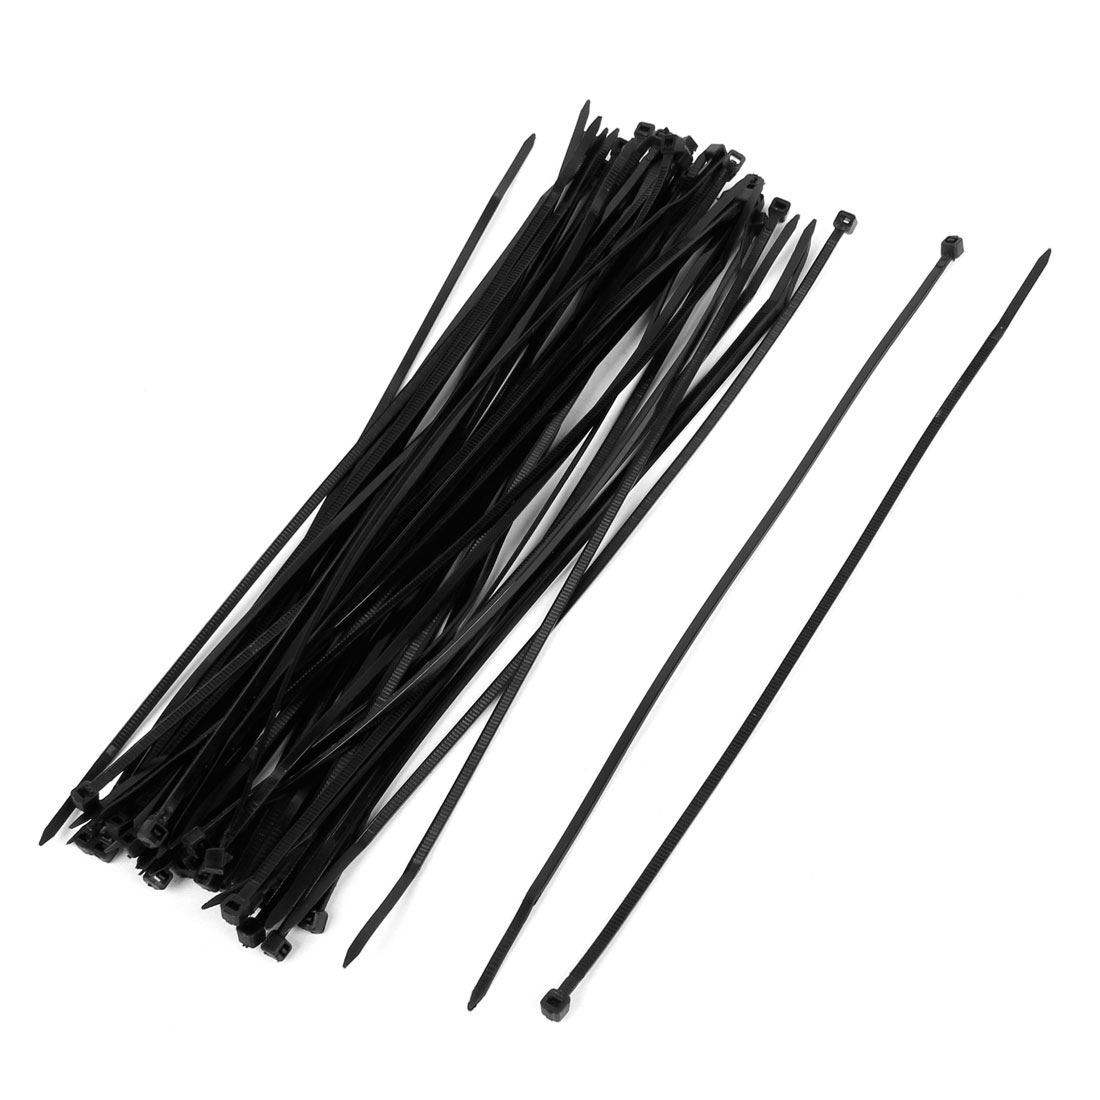 Unique Bargains 50 Pcs 9.8 Inch Length Heat-resisting Cable Wire Zip Ties Black